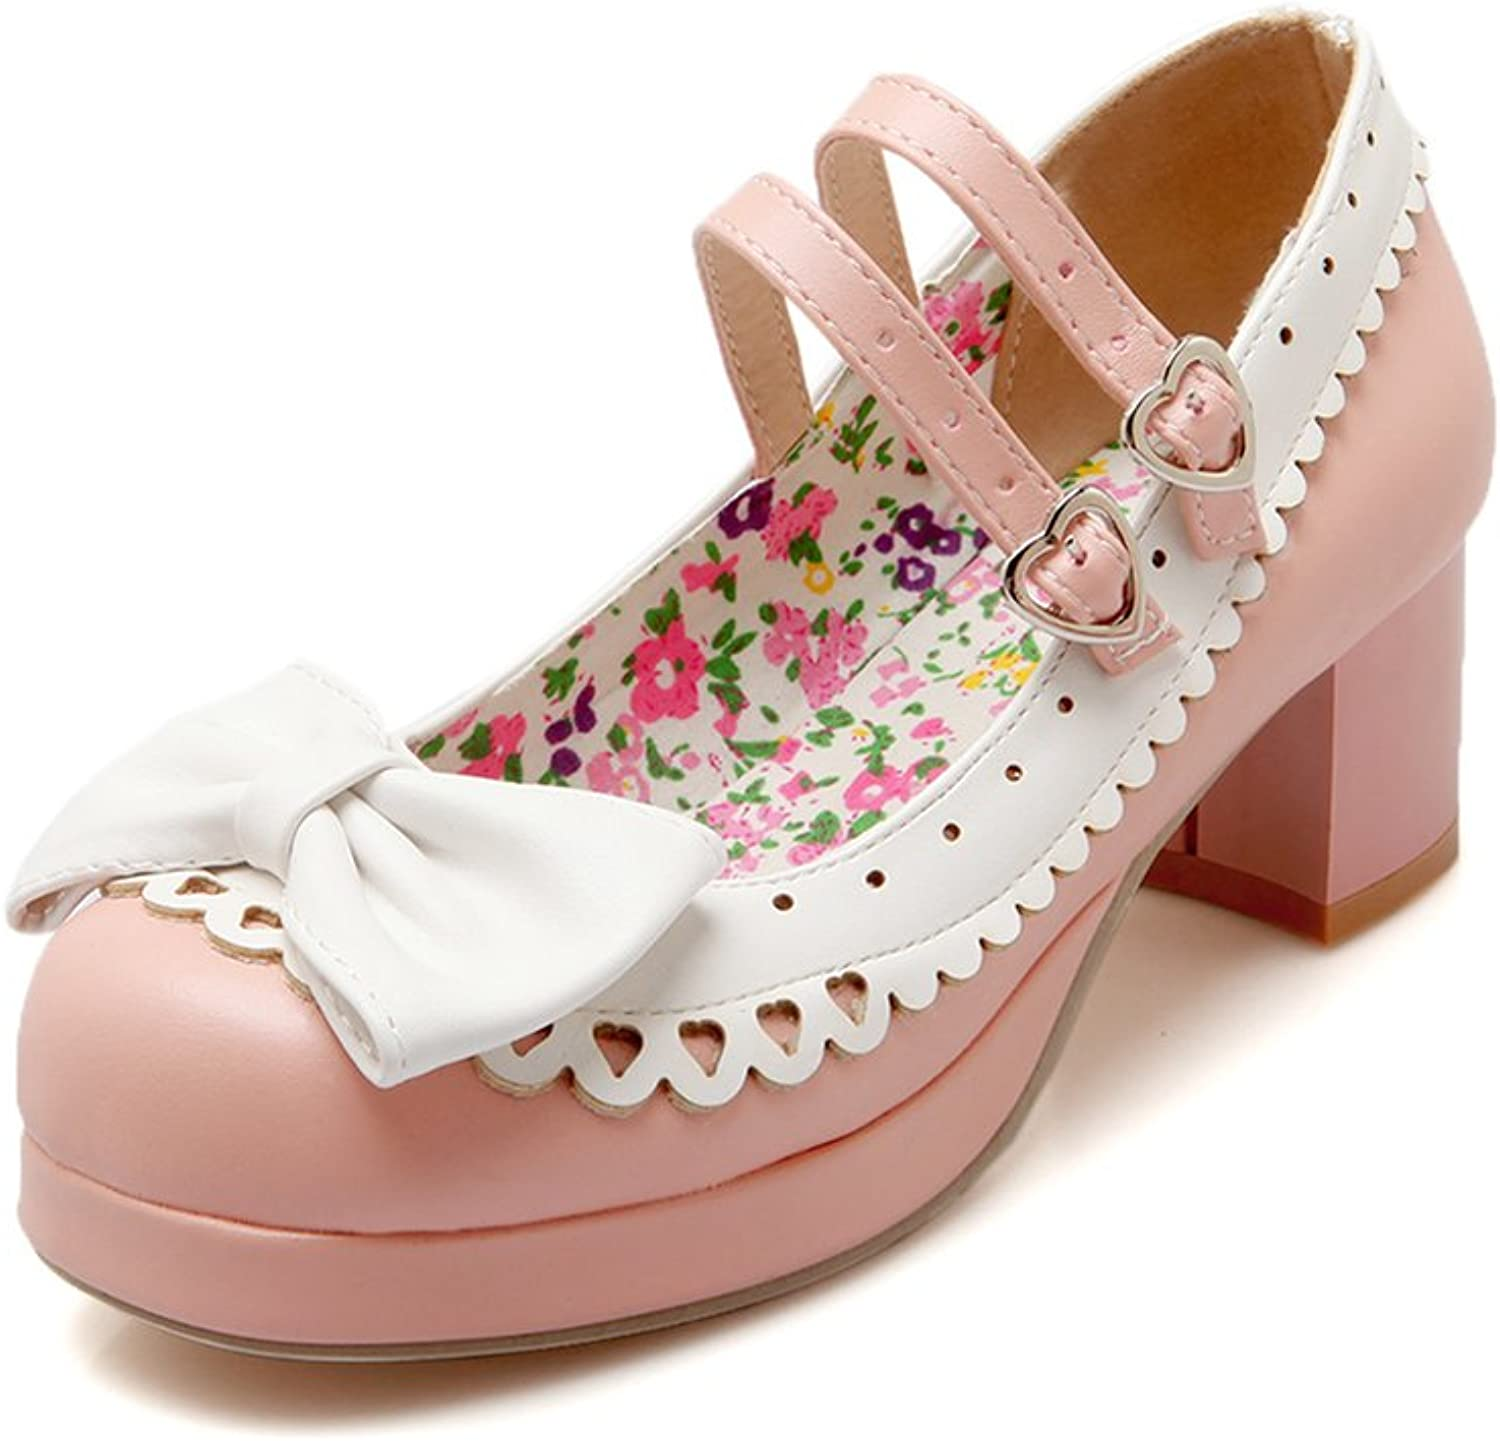 Lucksender Womens Lolita Style Chunky Heels Cute Bowknot Pumps shoes